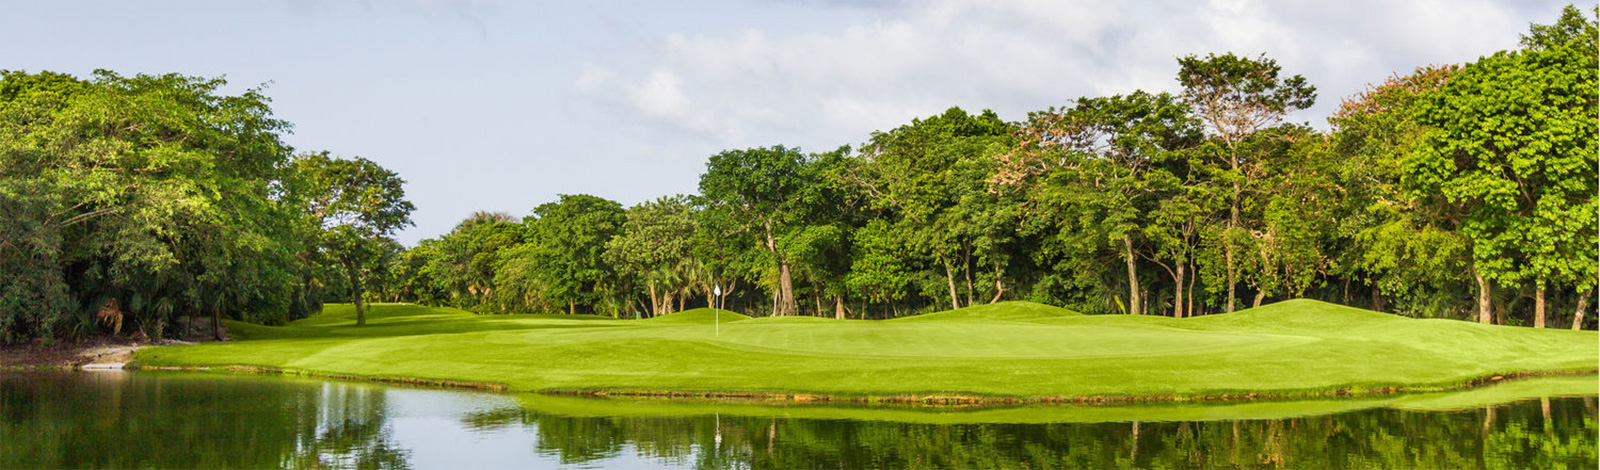 The Golf Club at Playacar